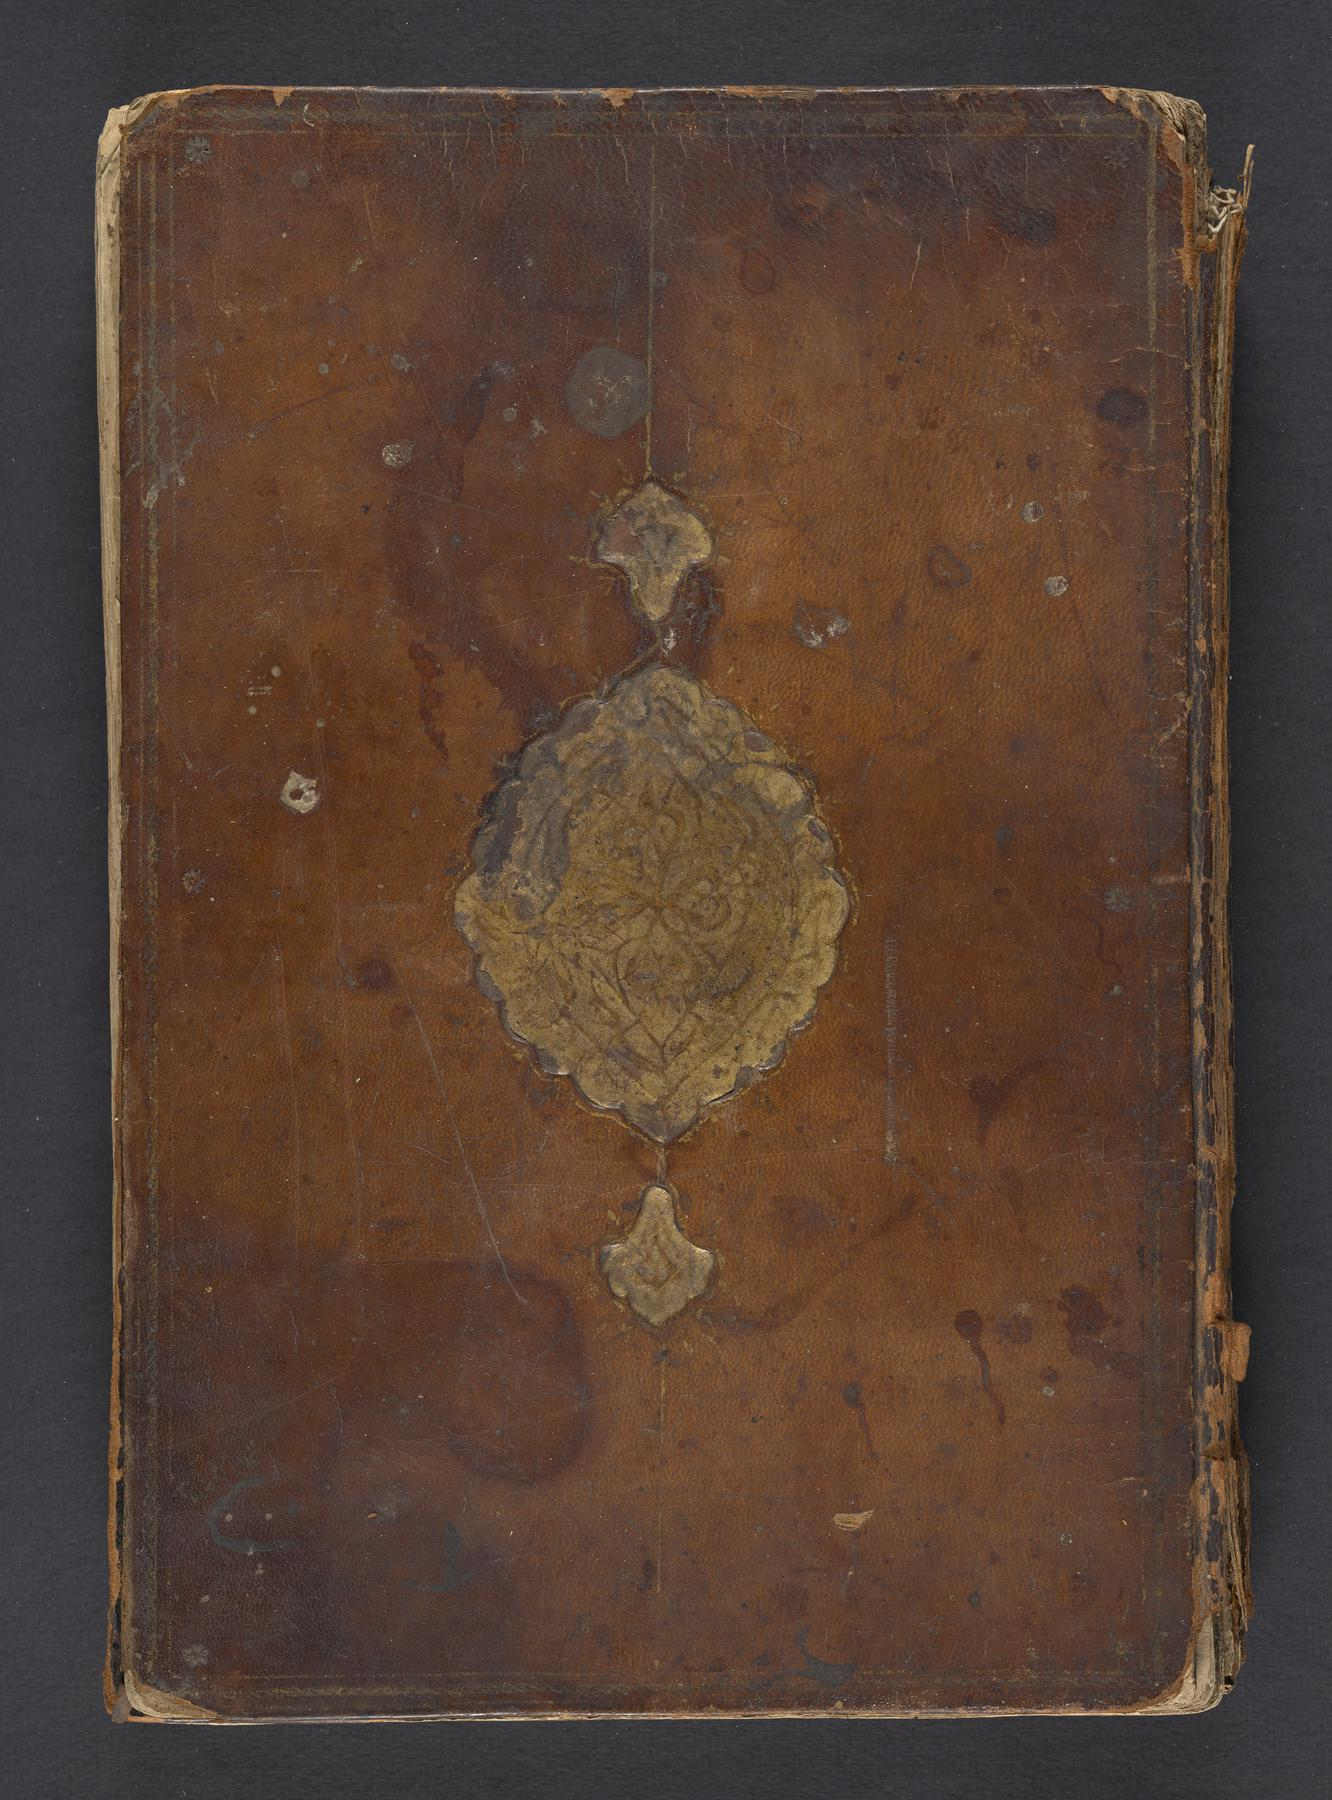 Cover of Ms. Codex 1896 with pendants and central mandorla